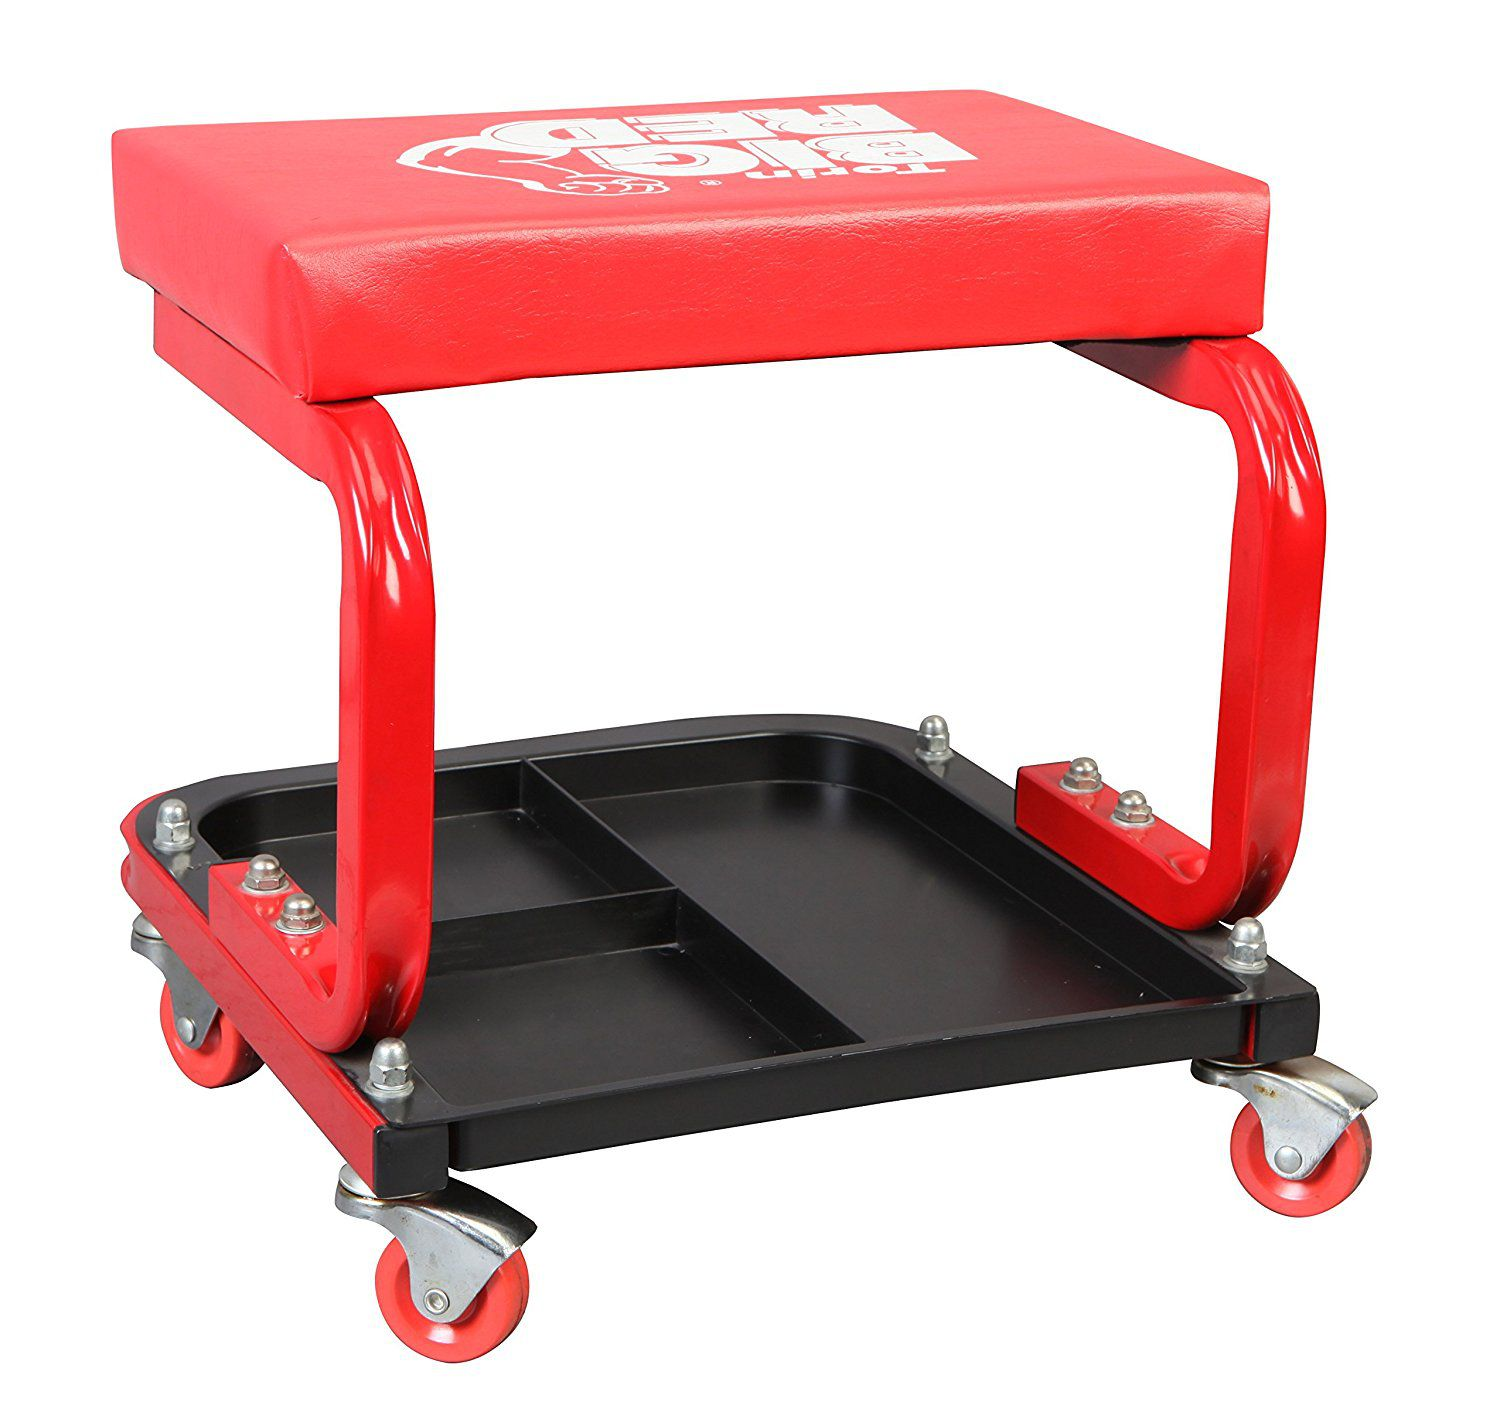 Padded Mechanic Stool With Tool Tray Best Offer